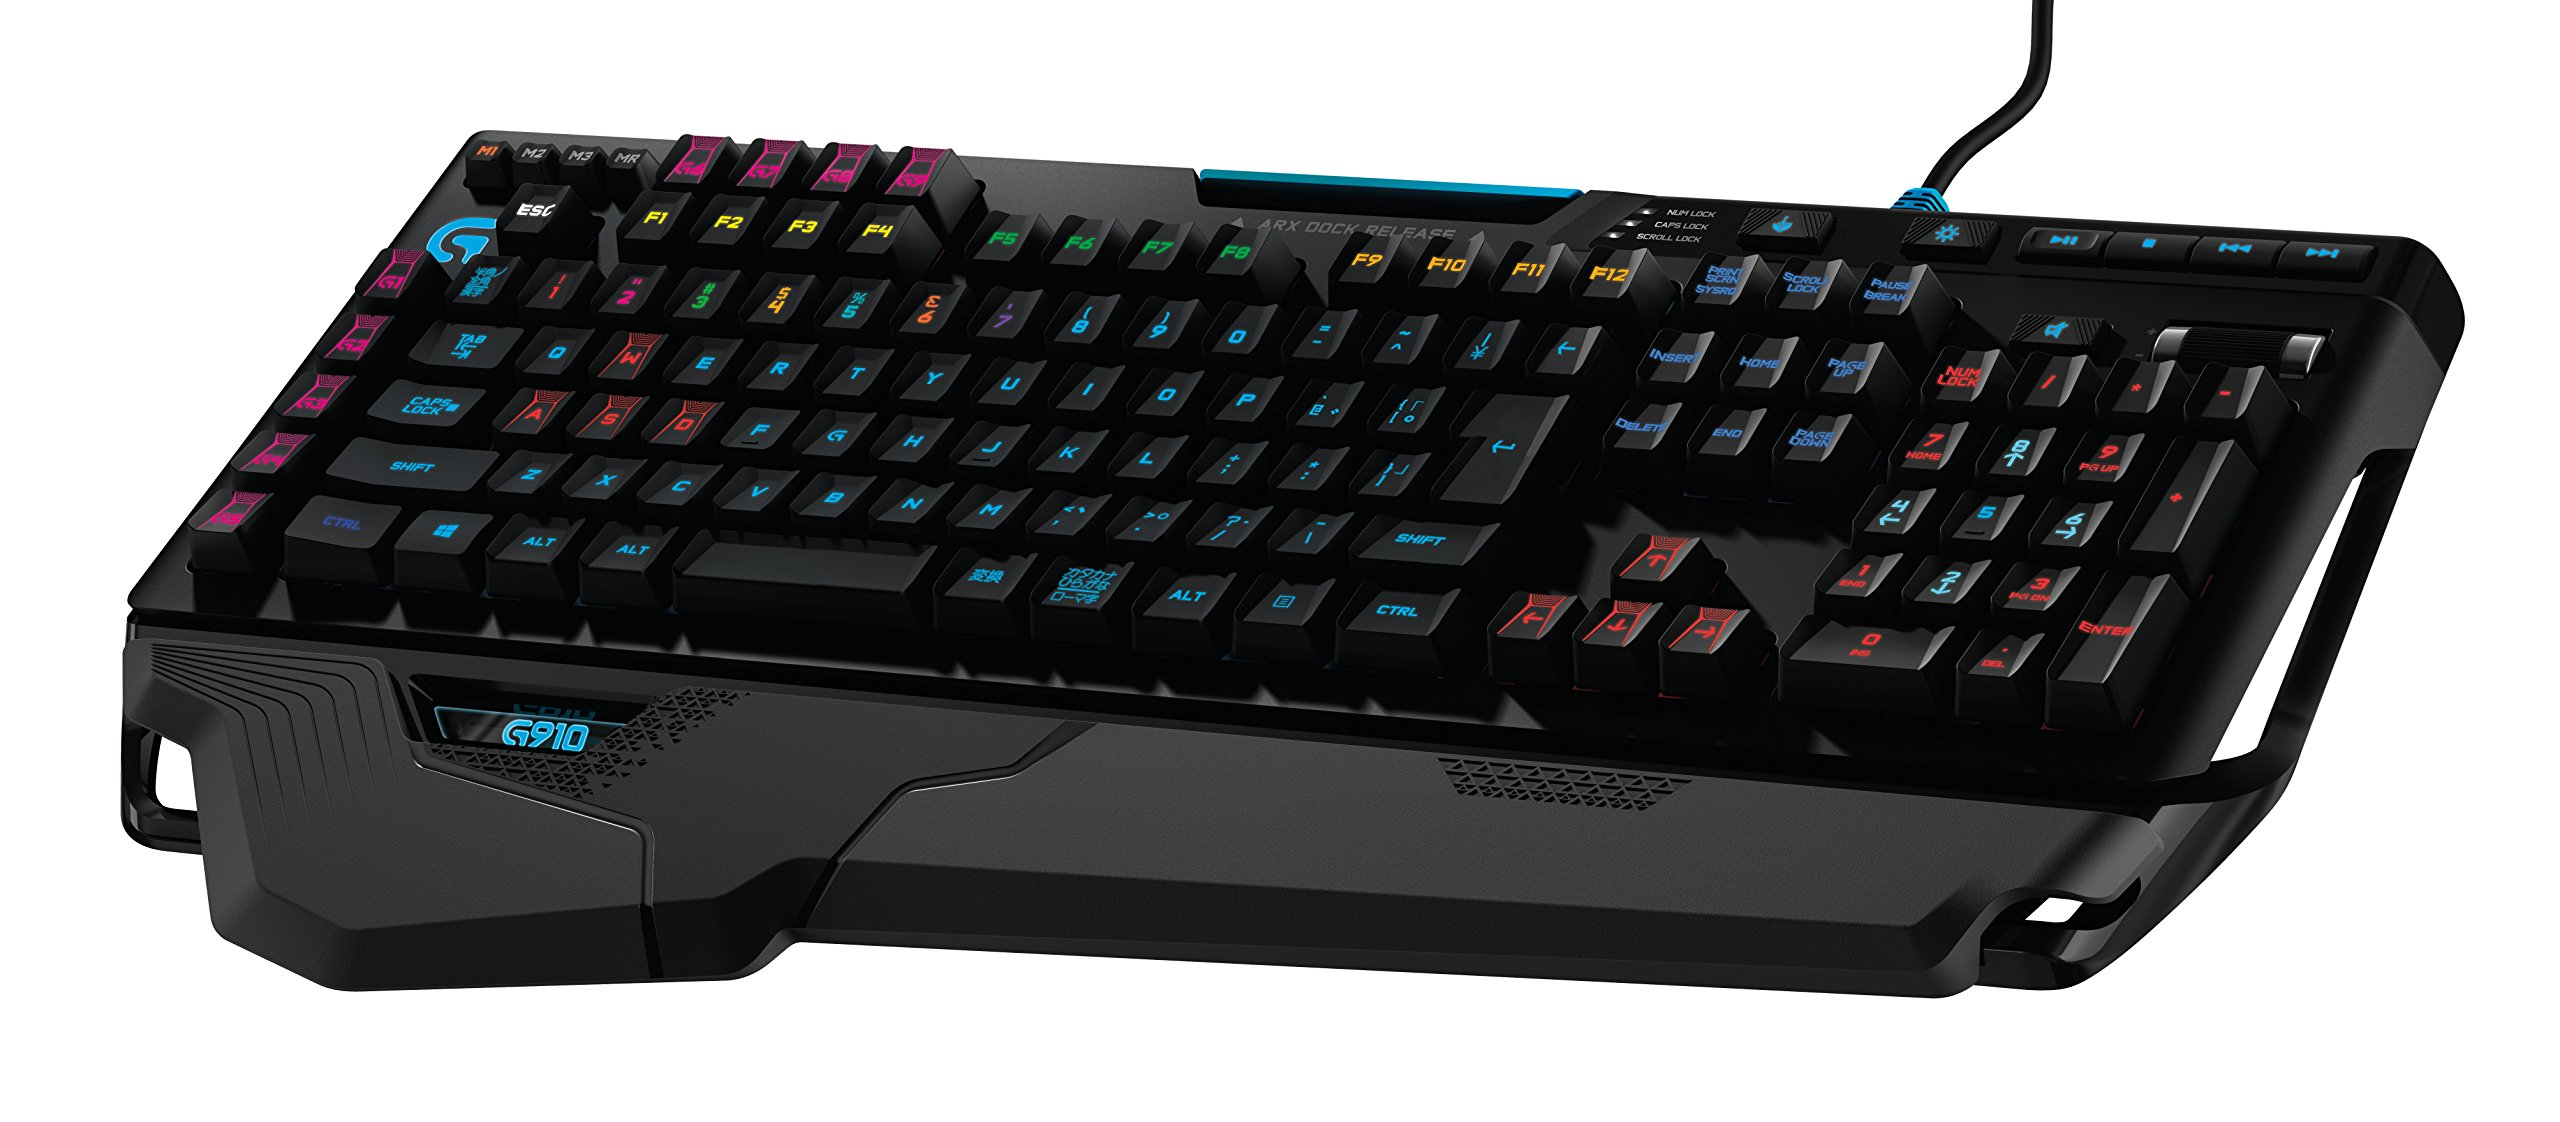 Logitech G910 Orion Spark RGB Mechanical Gaming Keyboard – 9 Programmable Buttons, Dedicated Media Controls by Logitech